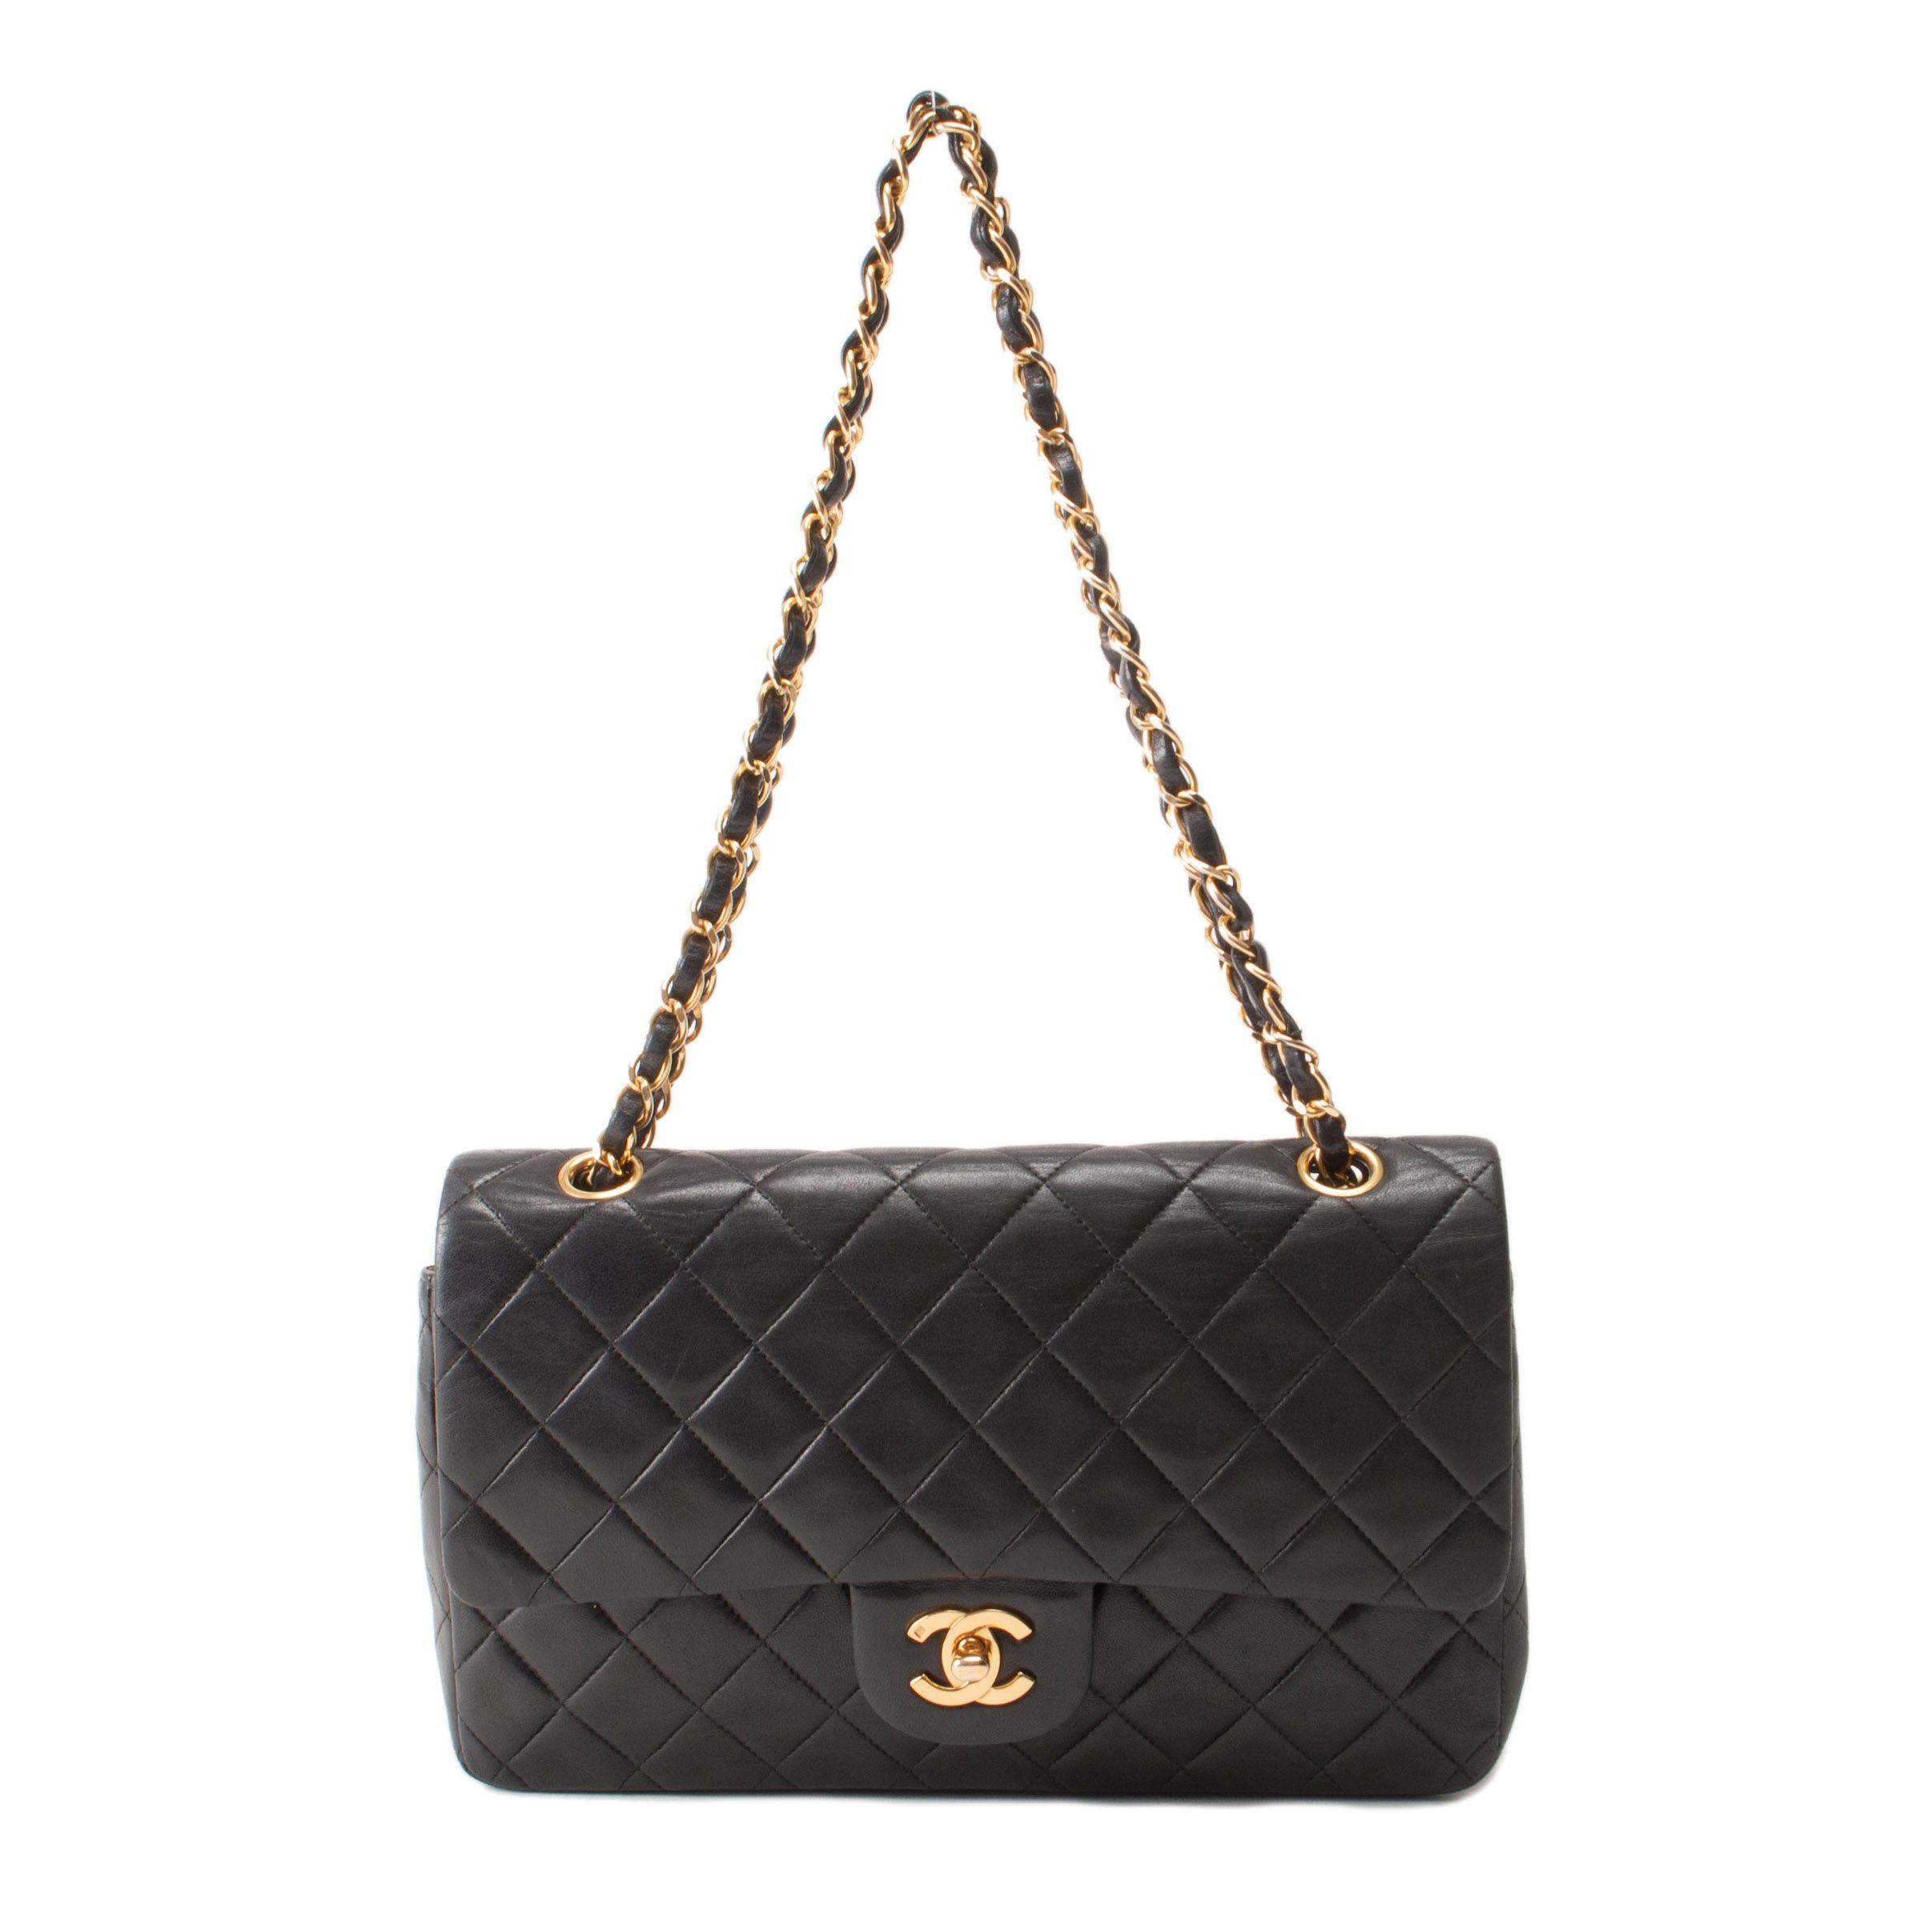 Classic - Chanel Leather Icons - Want! Want! Want!   Bags bags bags ... d95265e1c9